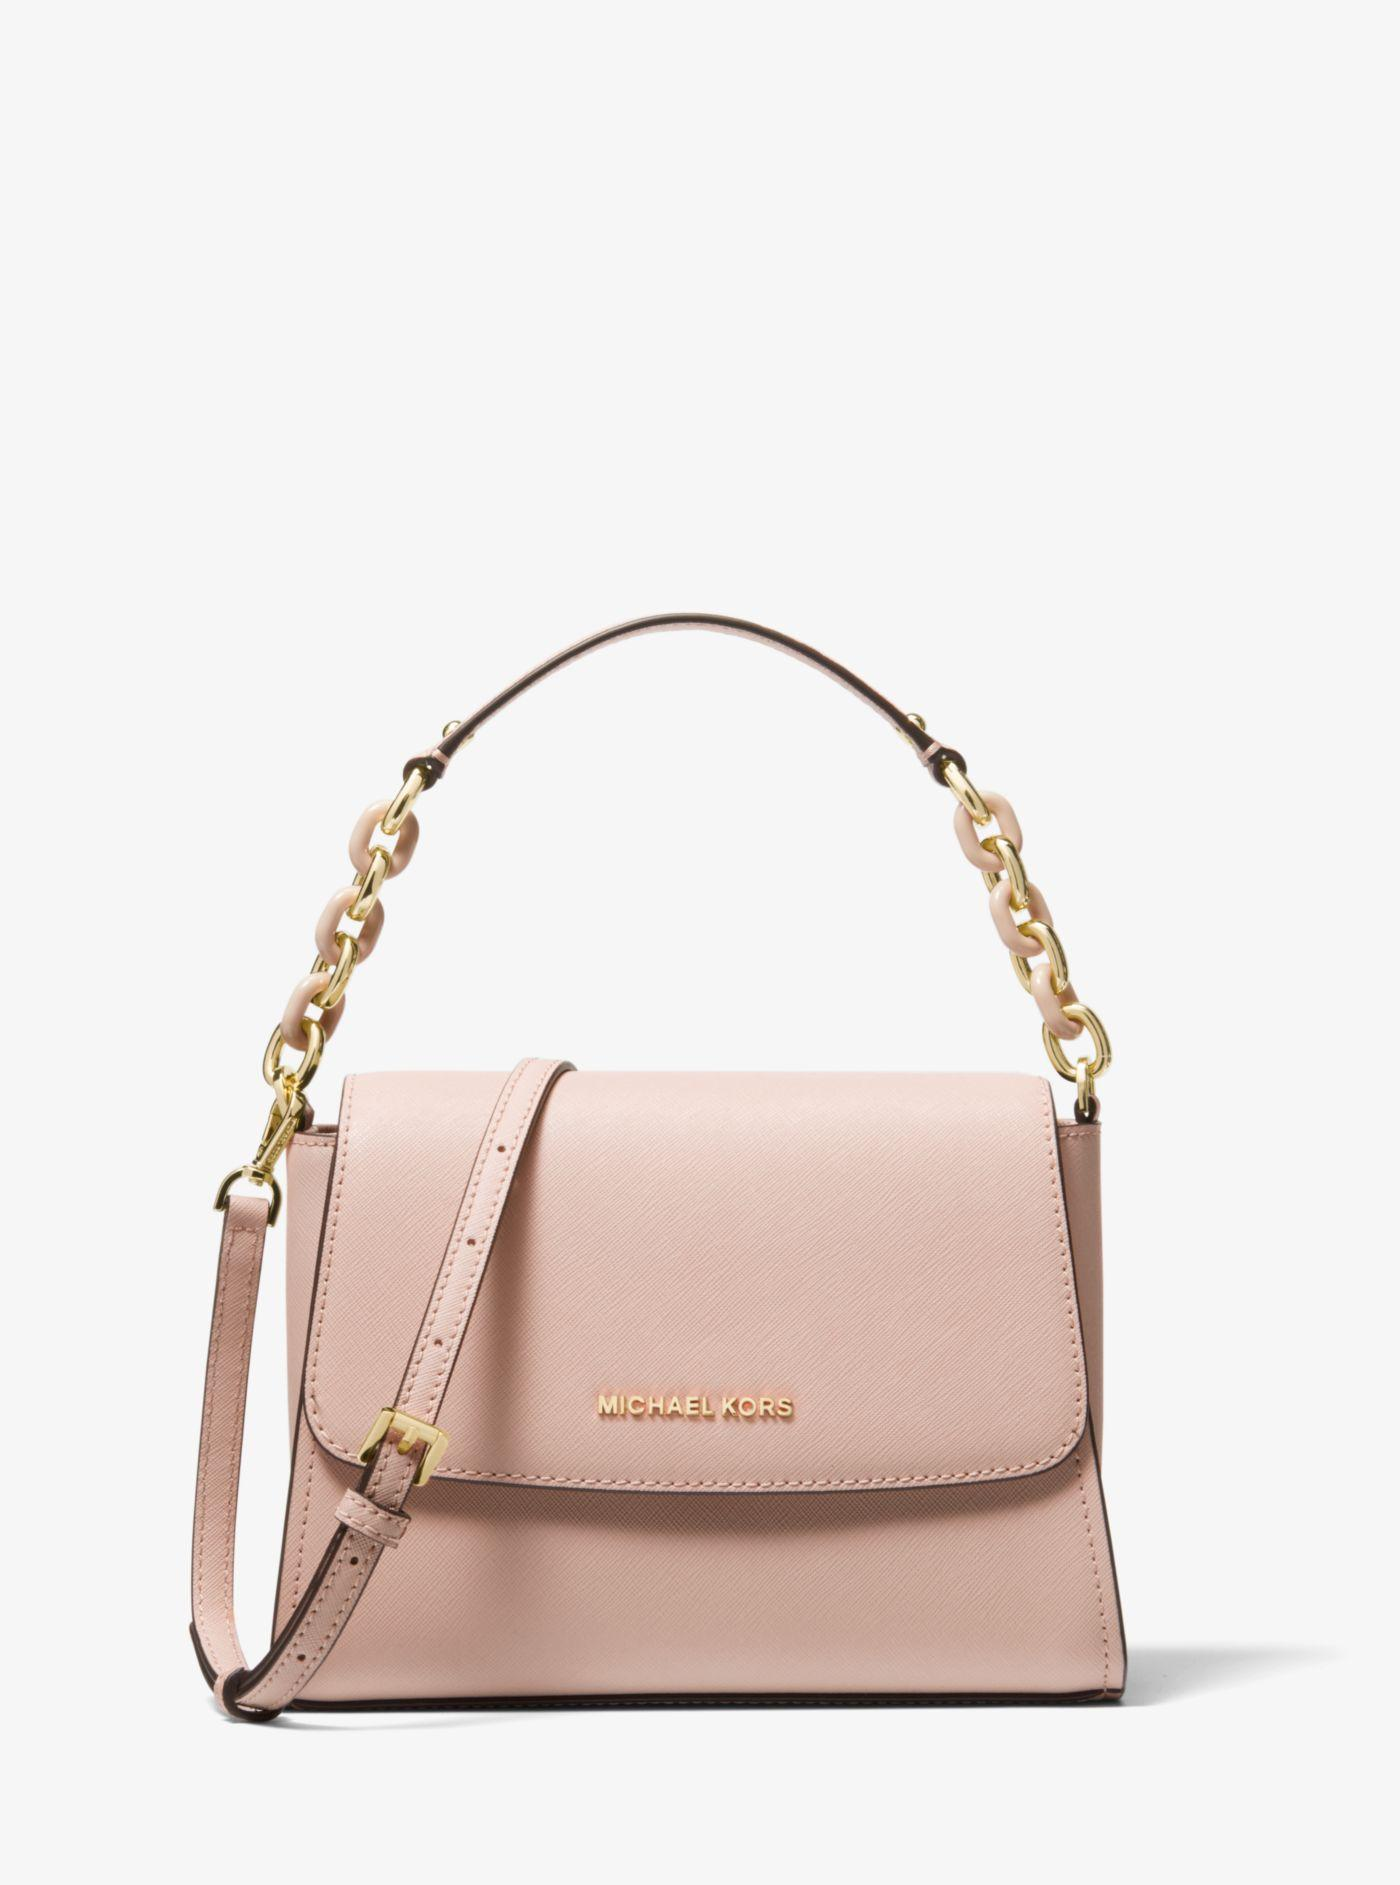 3d1e4e8b84c7 ... Sofia Small Saffiano Leather Satchel - Lyst. View fullscreen